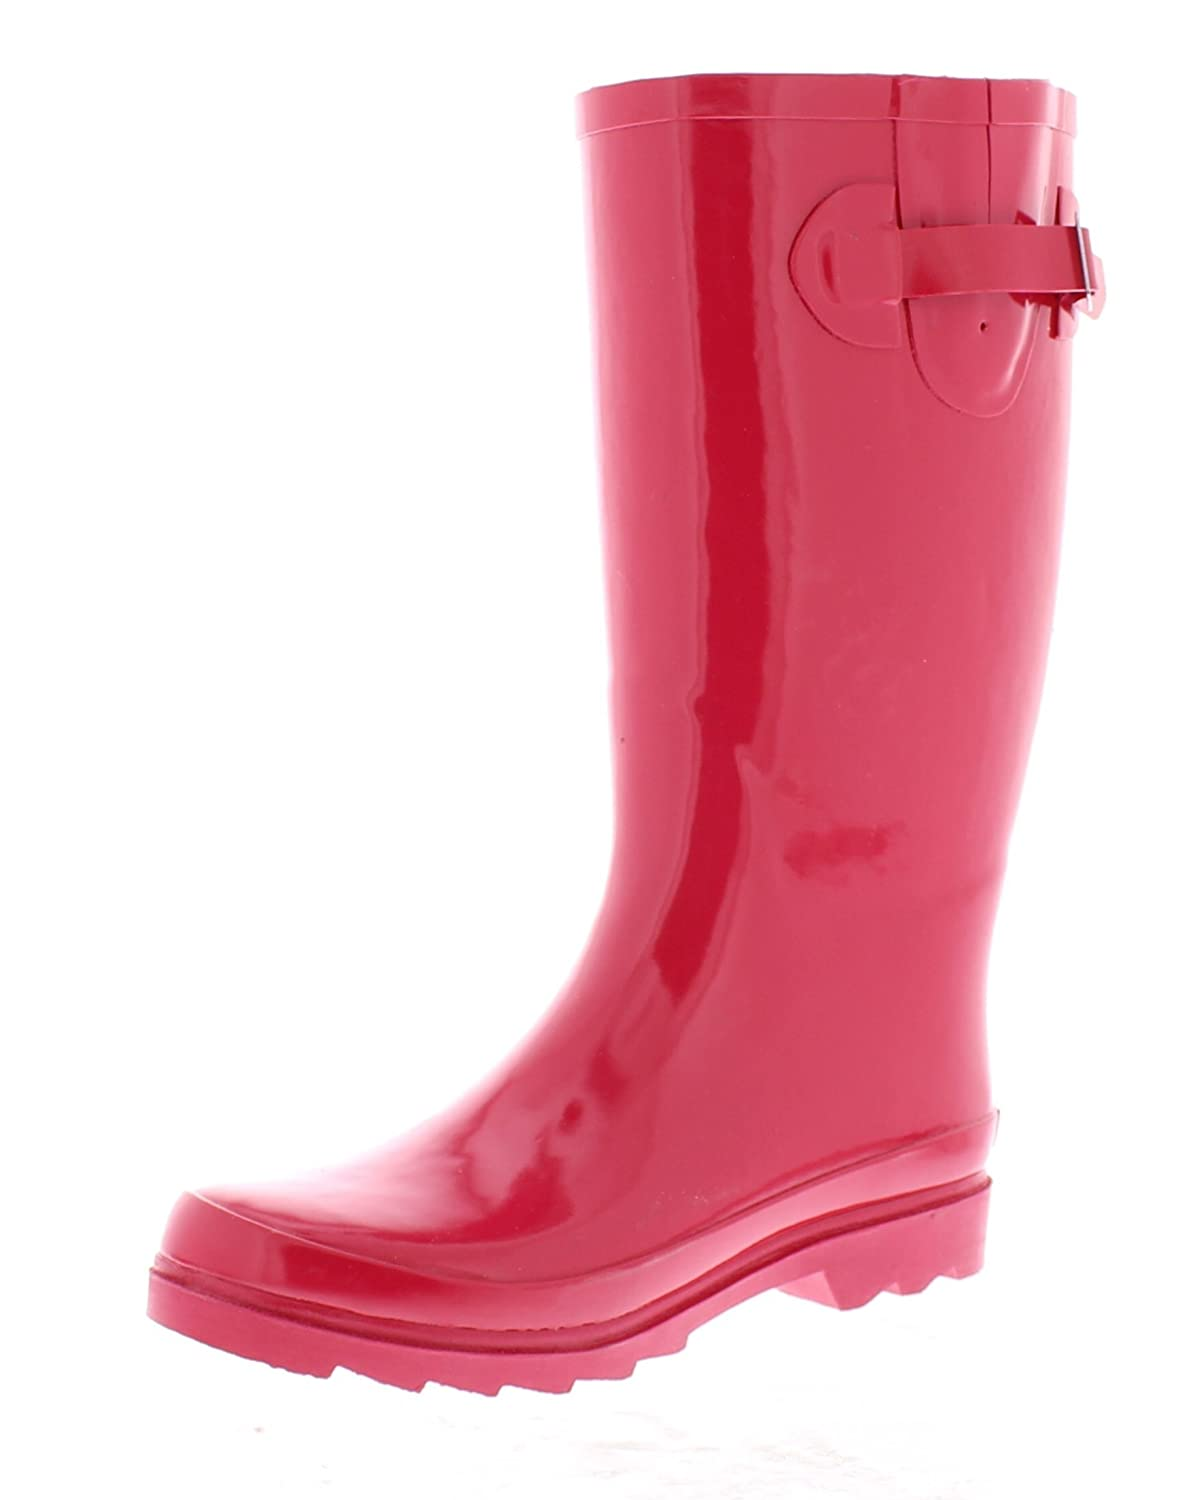 Marilyn Monroe Women's Basic Tall Buckle Rainboot Shoes, Waterproof Jelly Pull On Midcalf Welly Boots B078SLDLBJ 6 B(M) US|Red